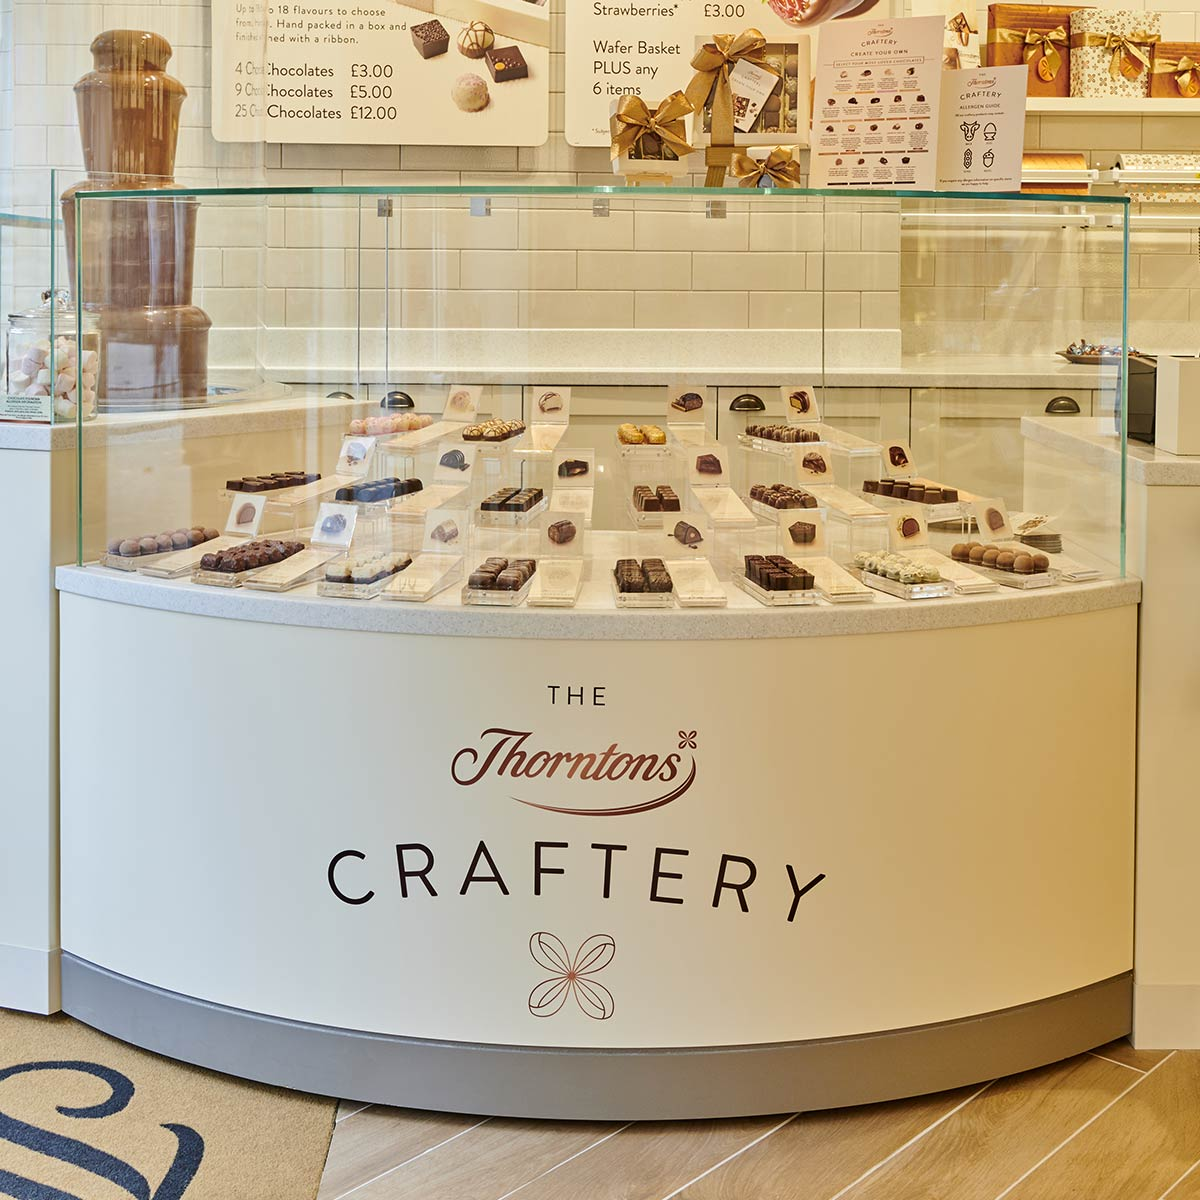 in-store chocolate creations